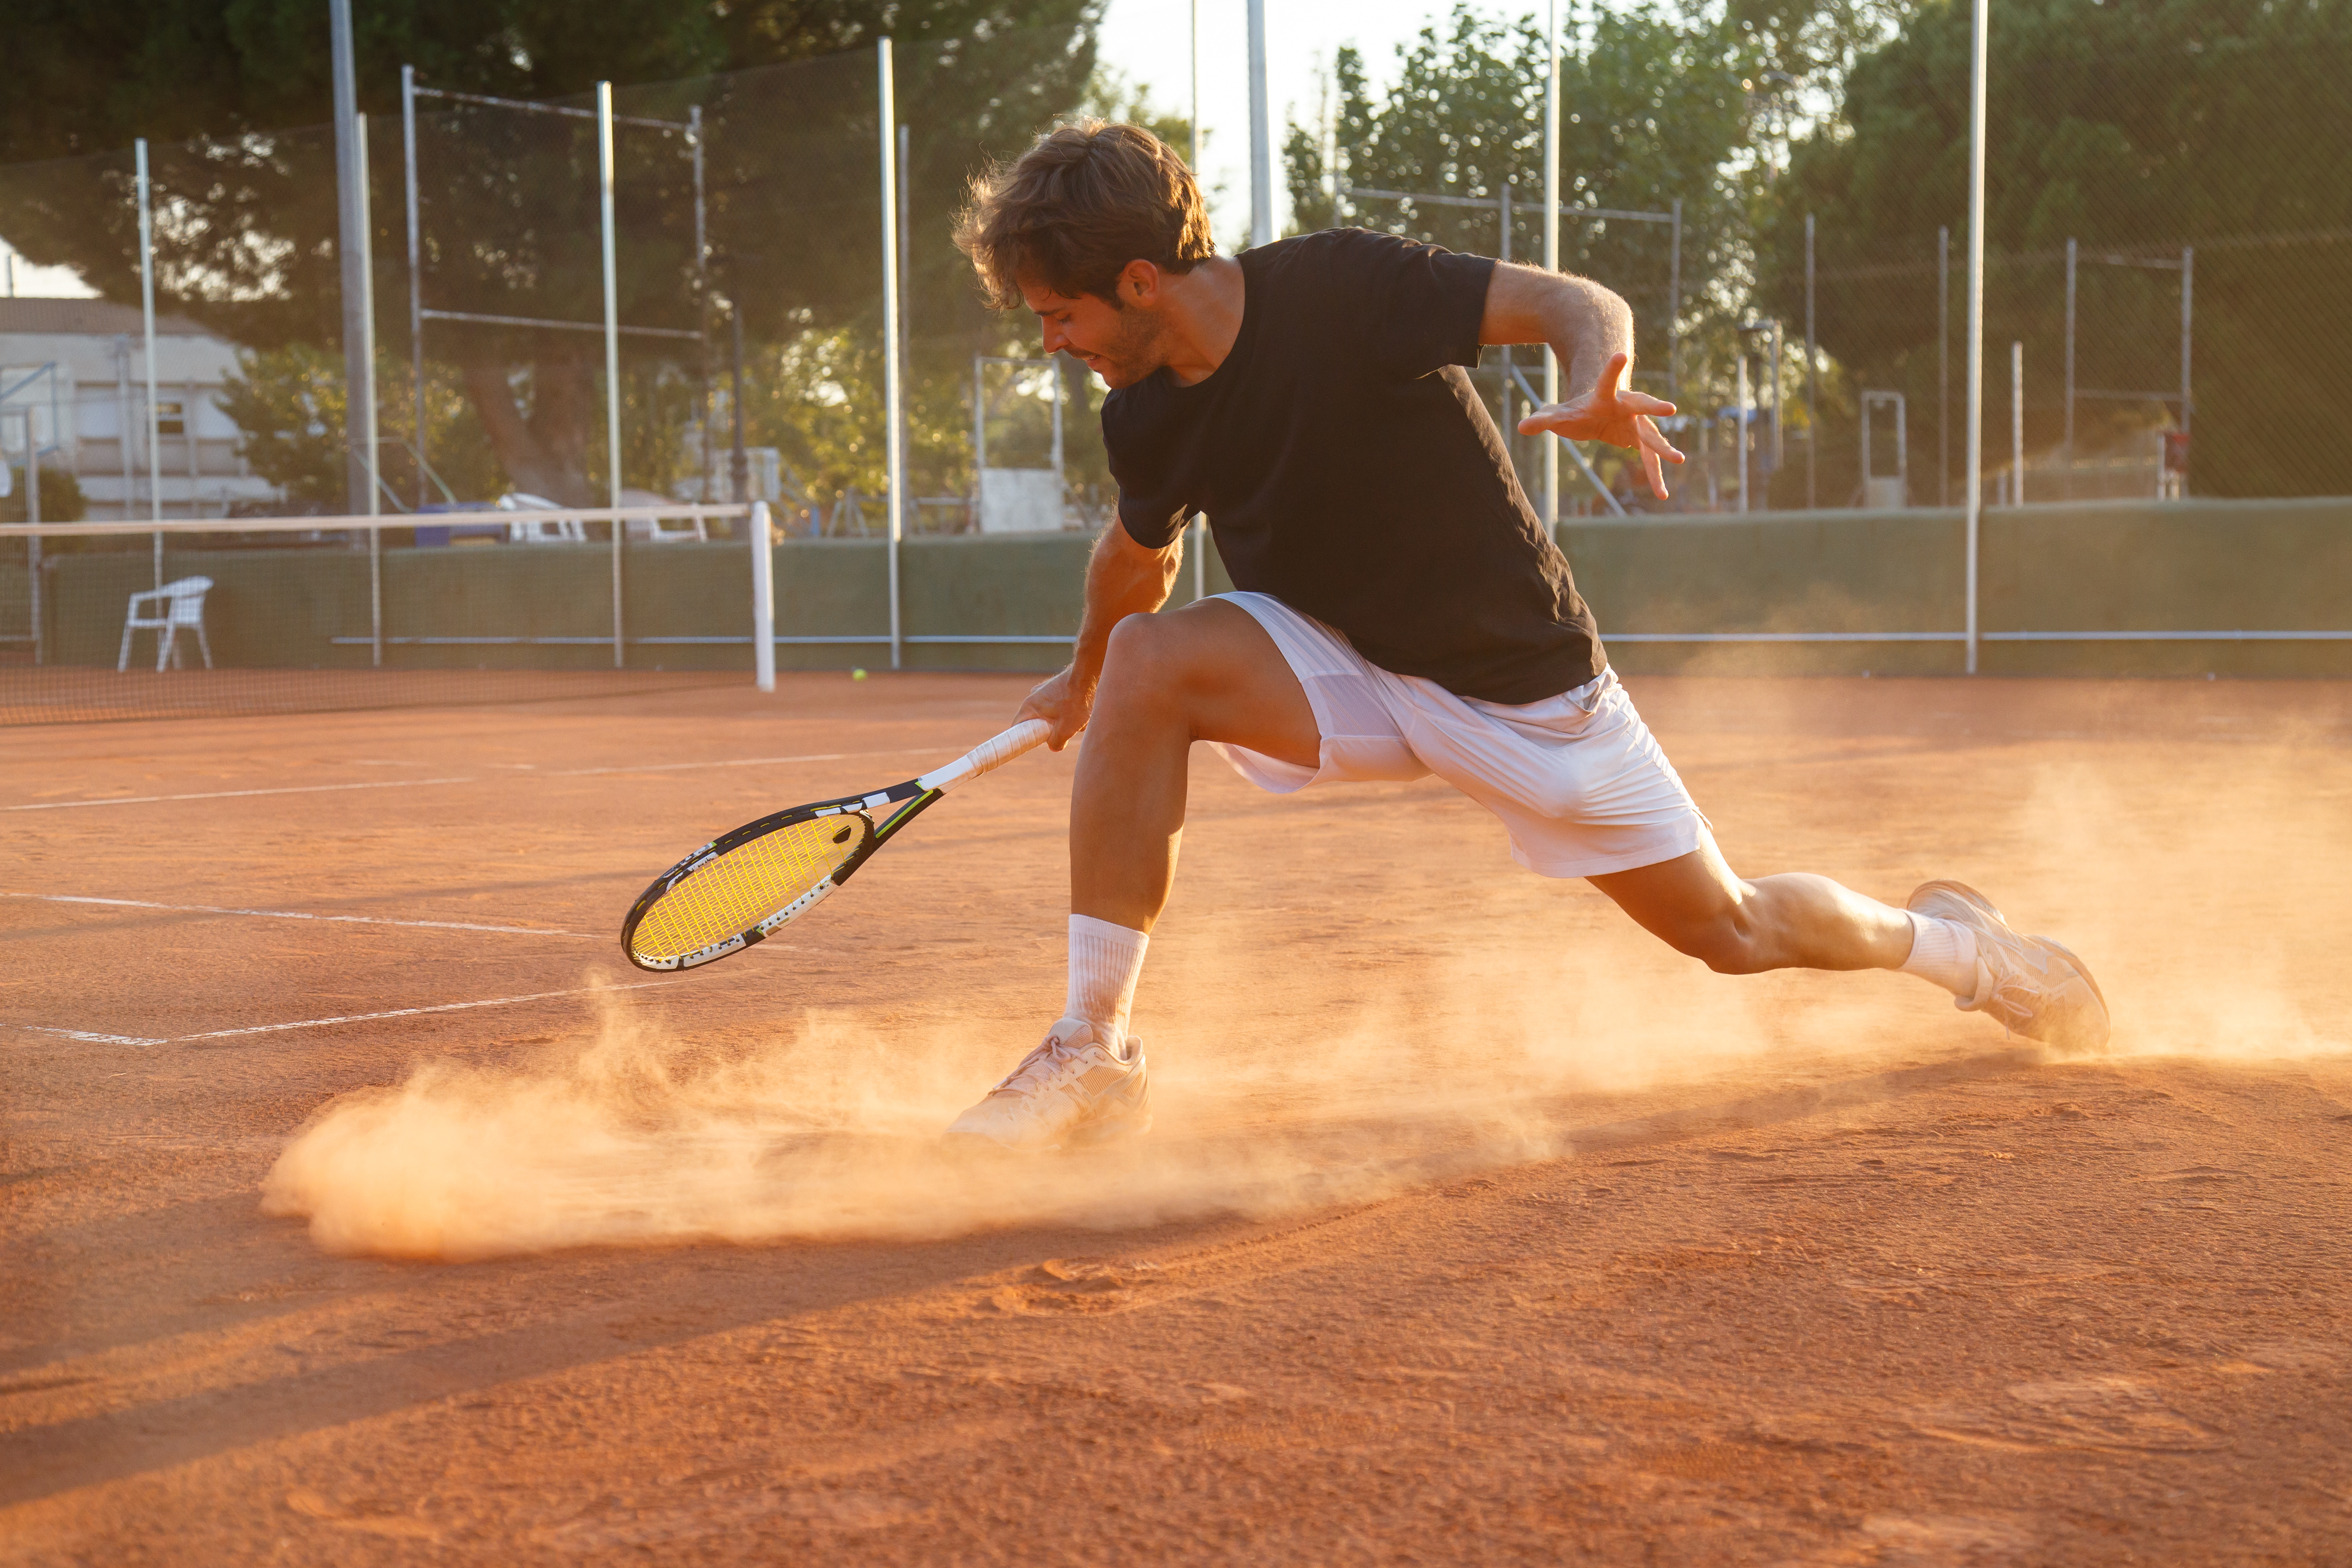 Professional tennis player on court